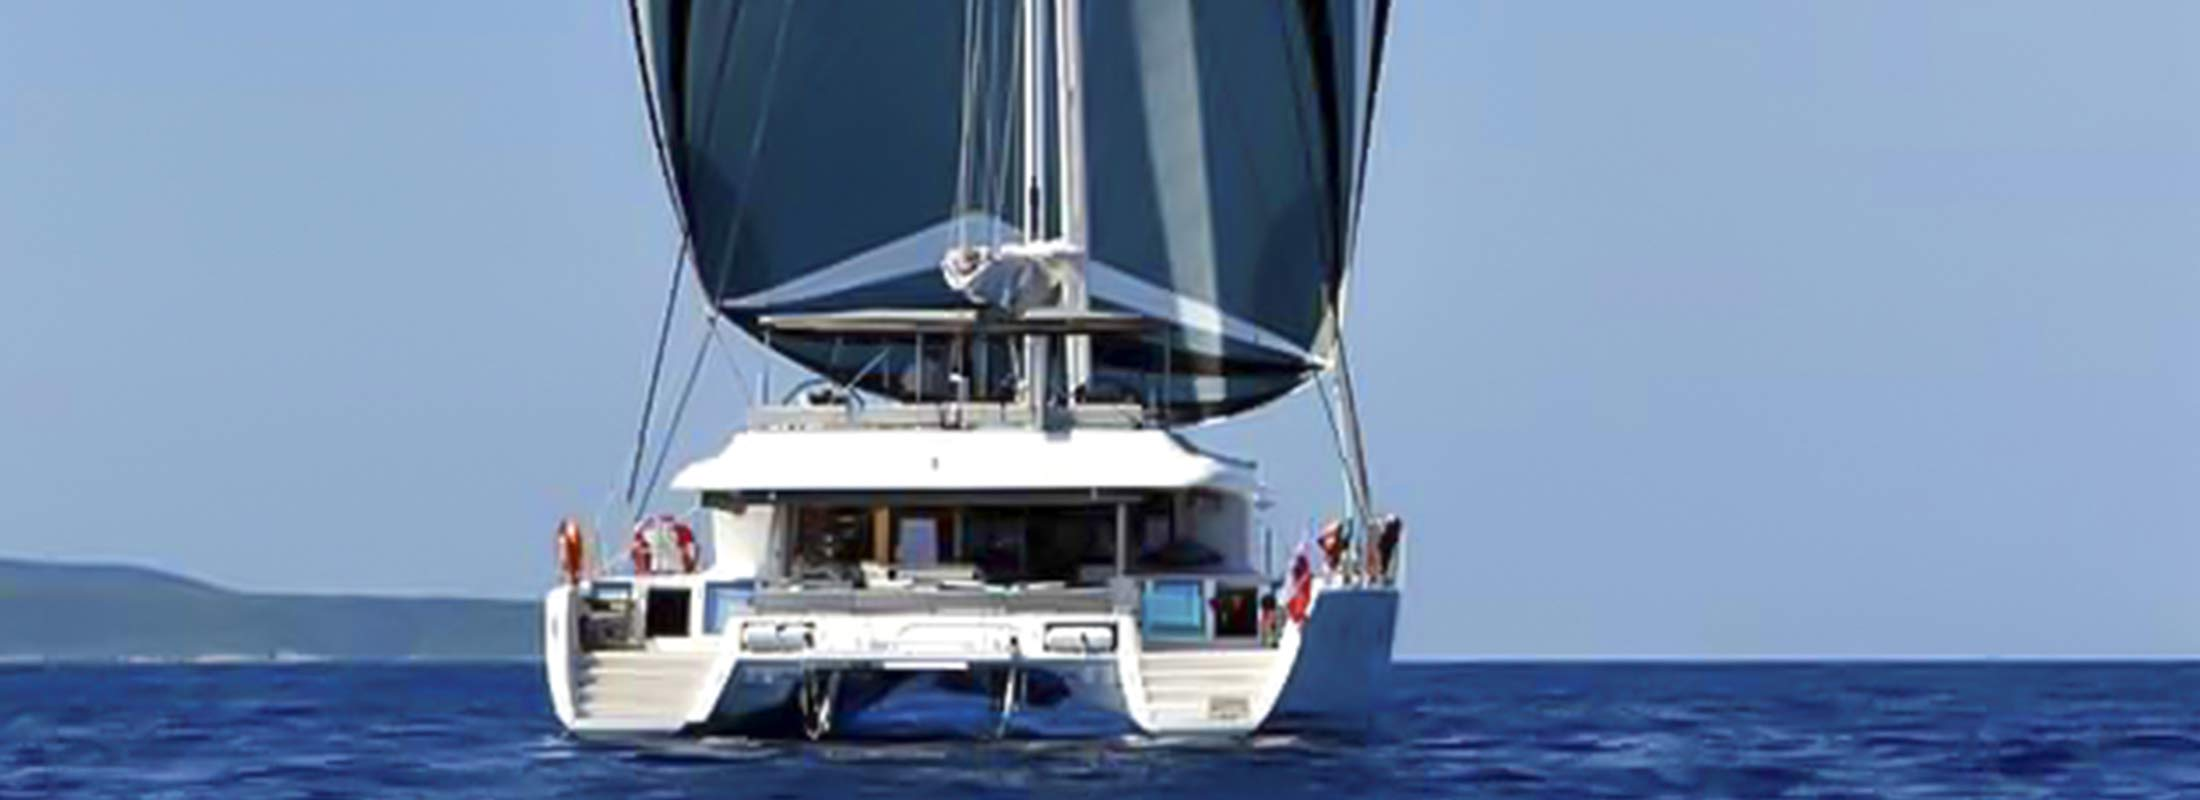 Ocean View Sailing Yacht for Charter Mediterranean Leeward Islands slider 2